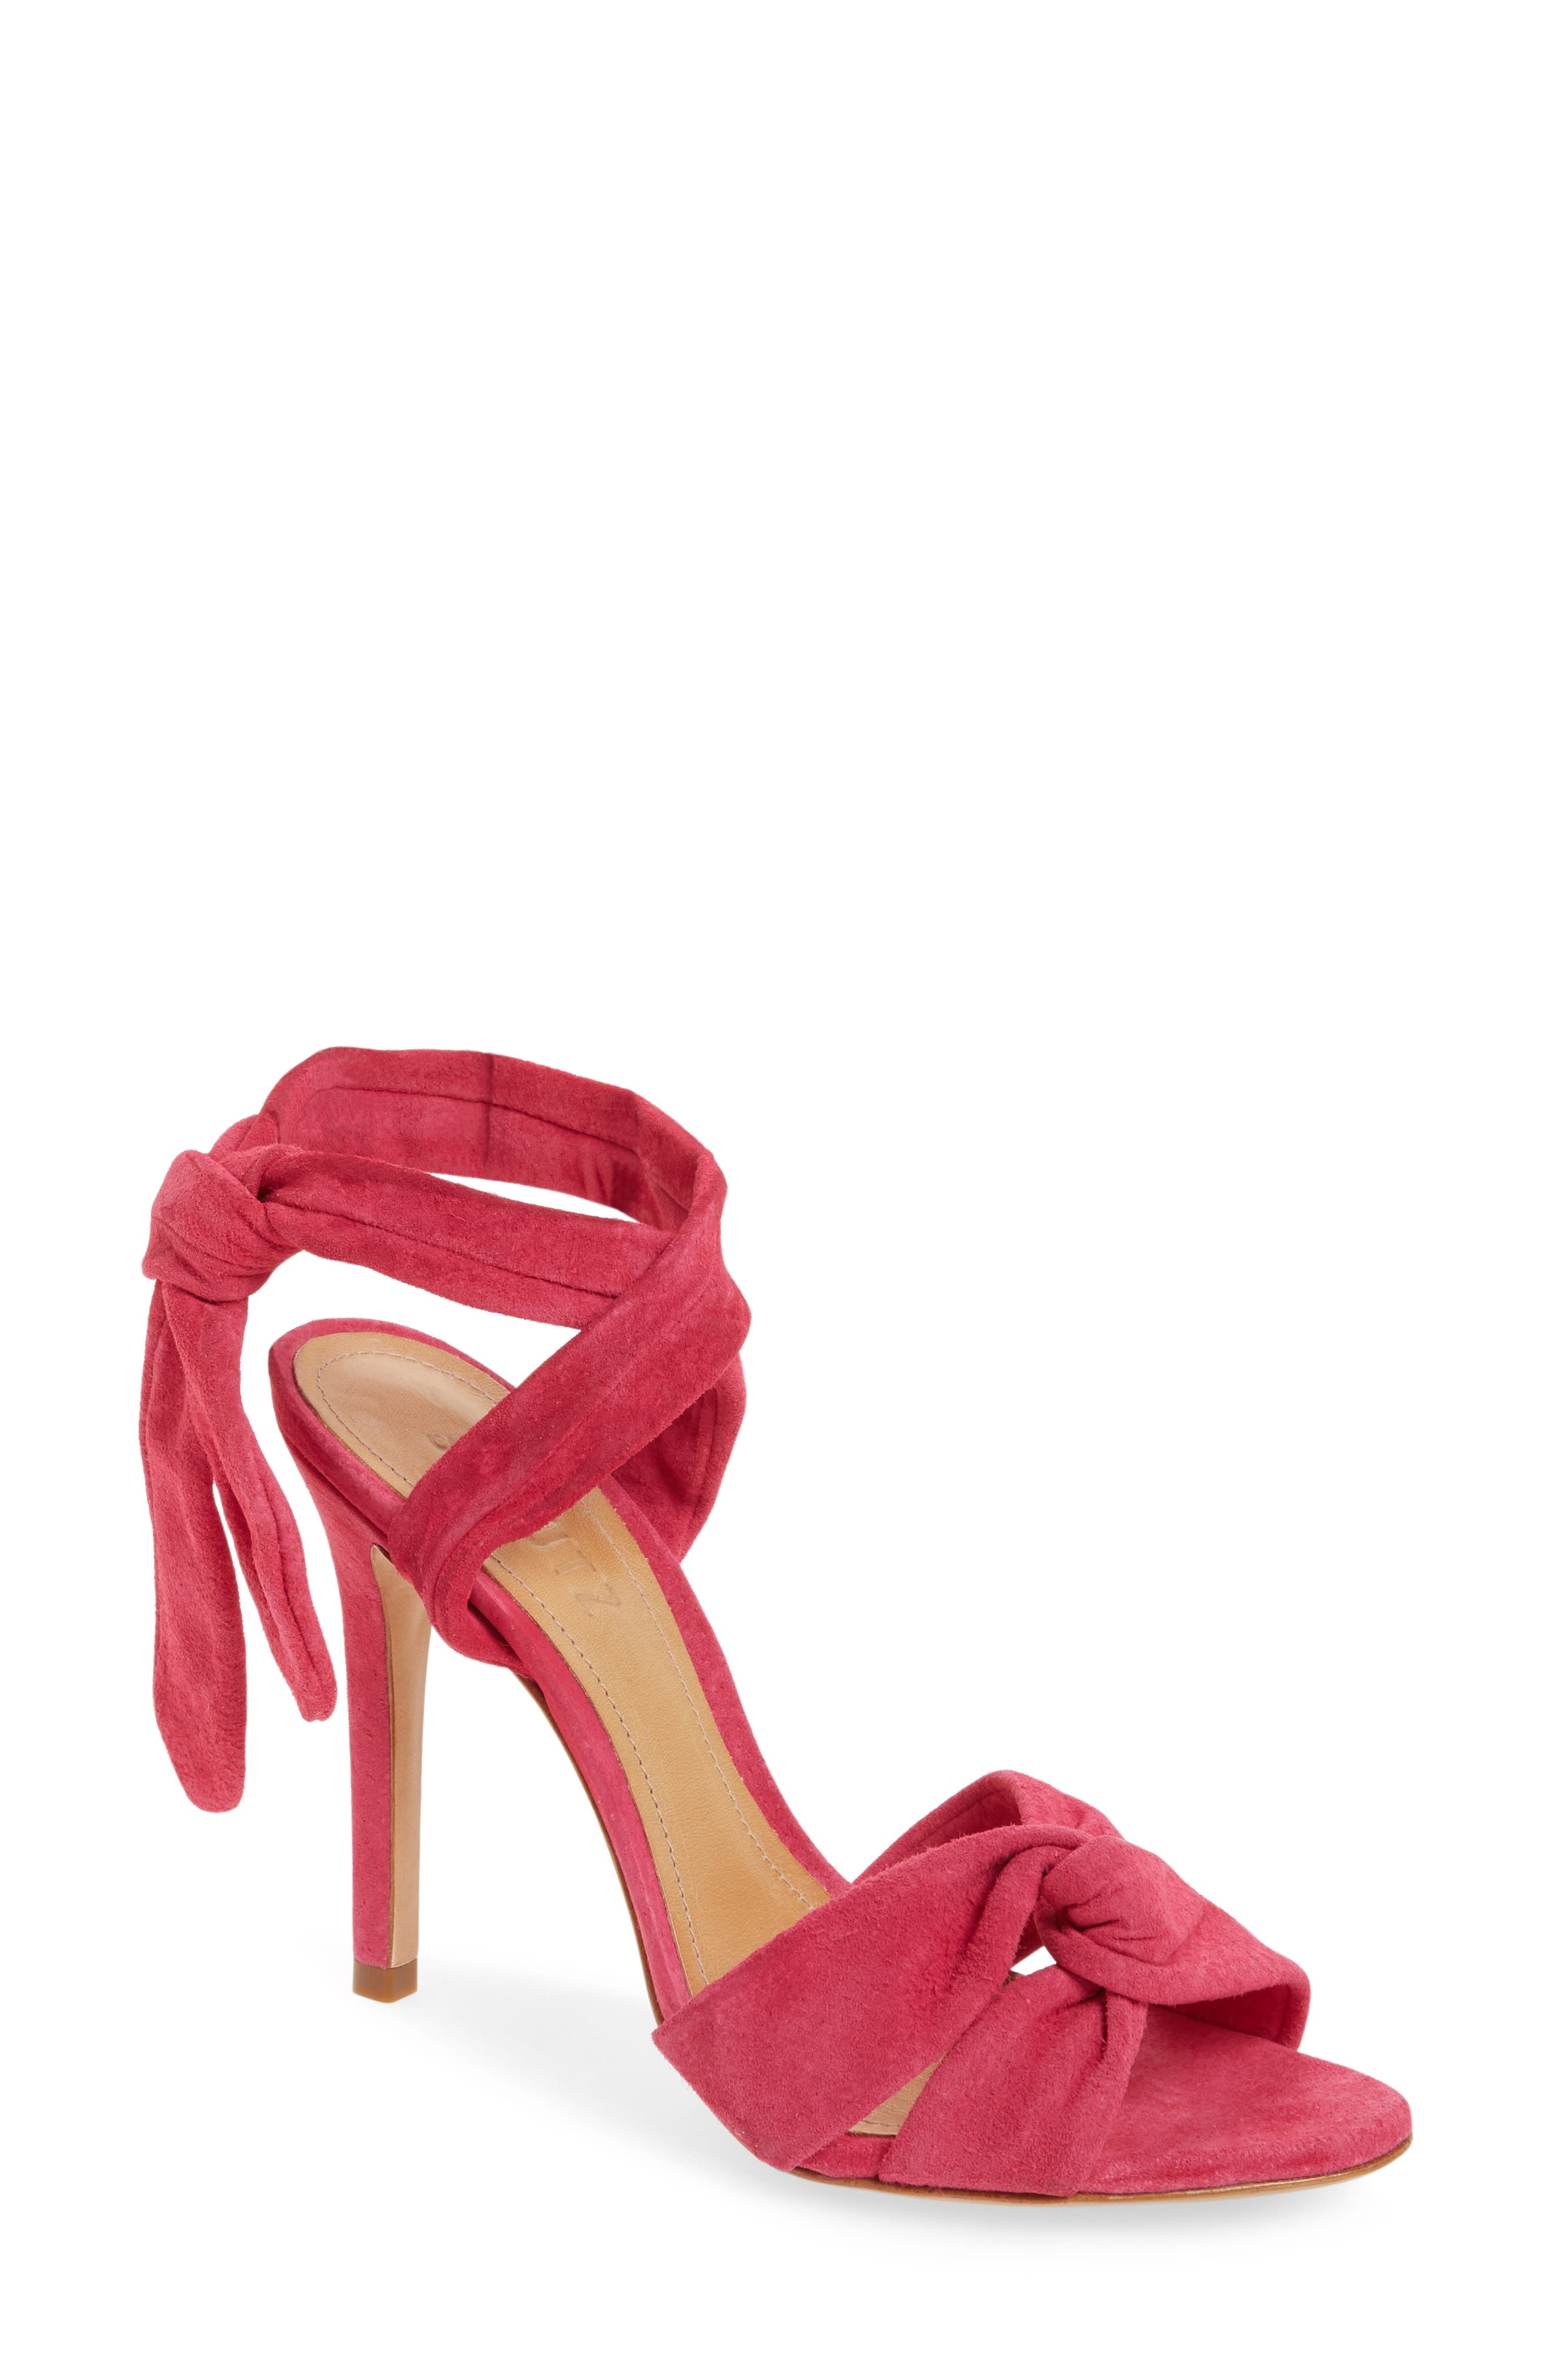 Alternate Image 1 Selected - Schutz Monia Sandal (Women)